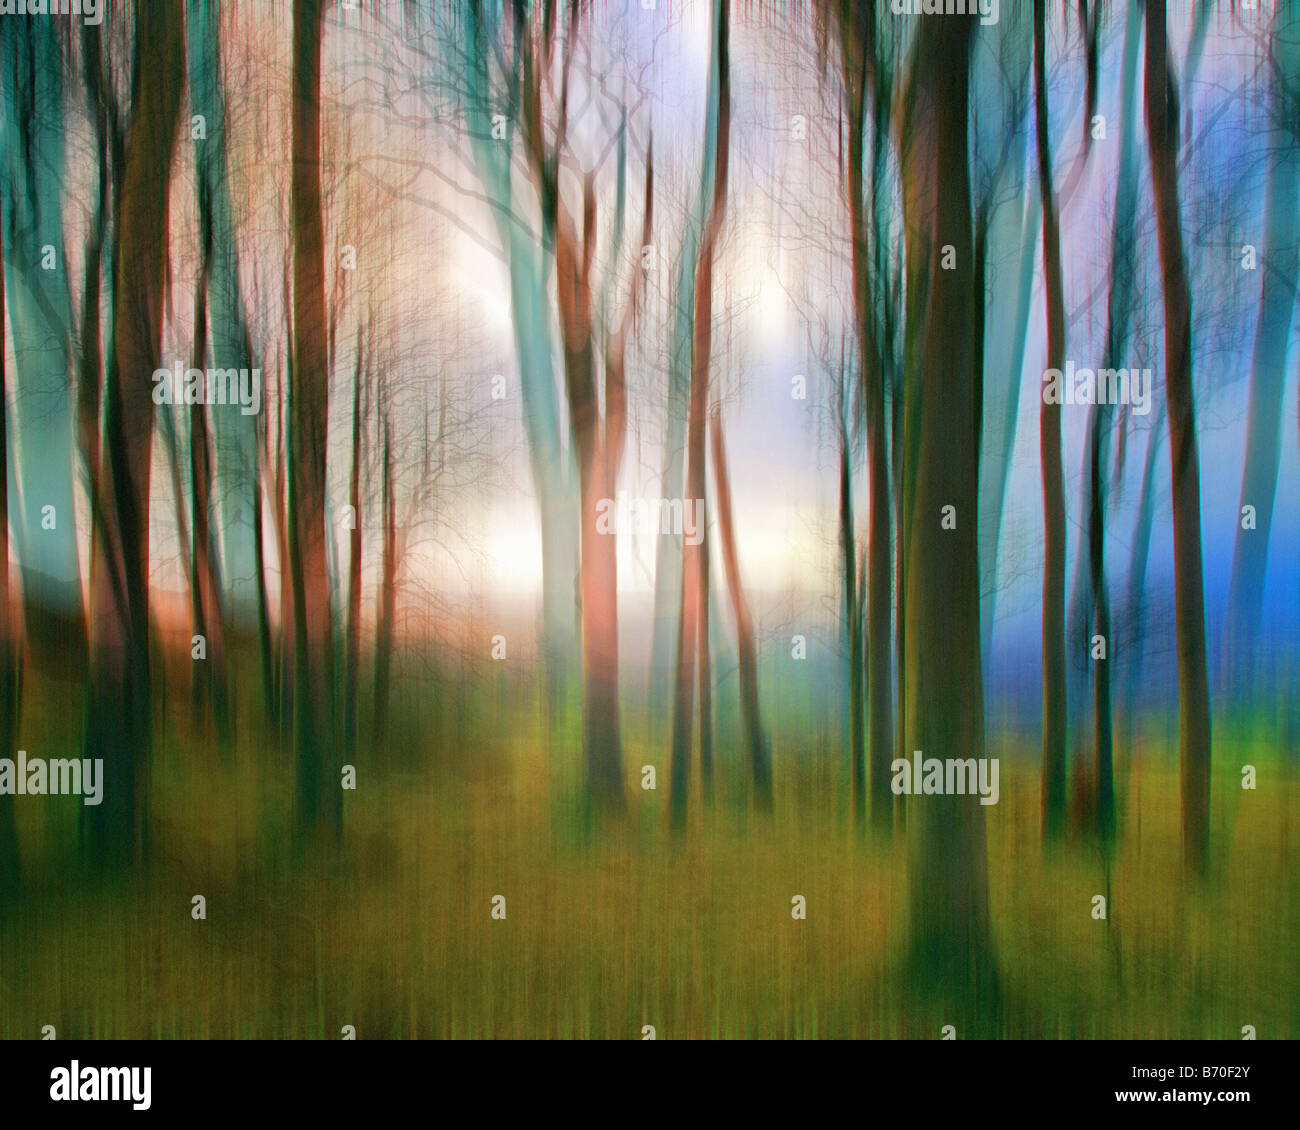 FINE ART : Magic Woods Photo Stock